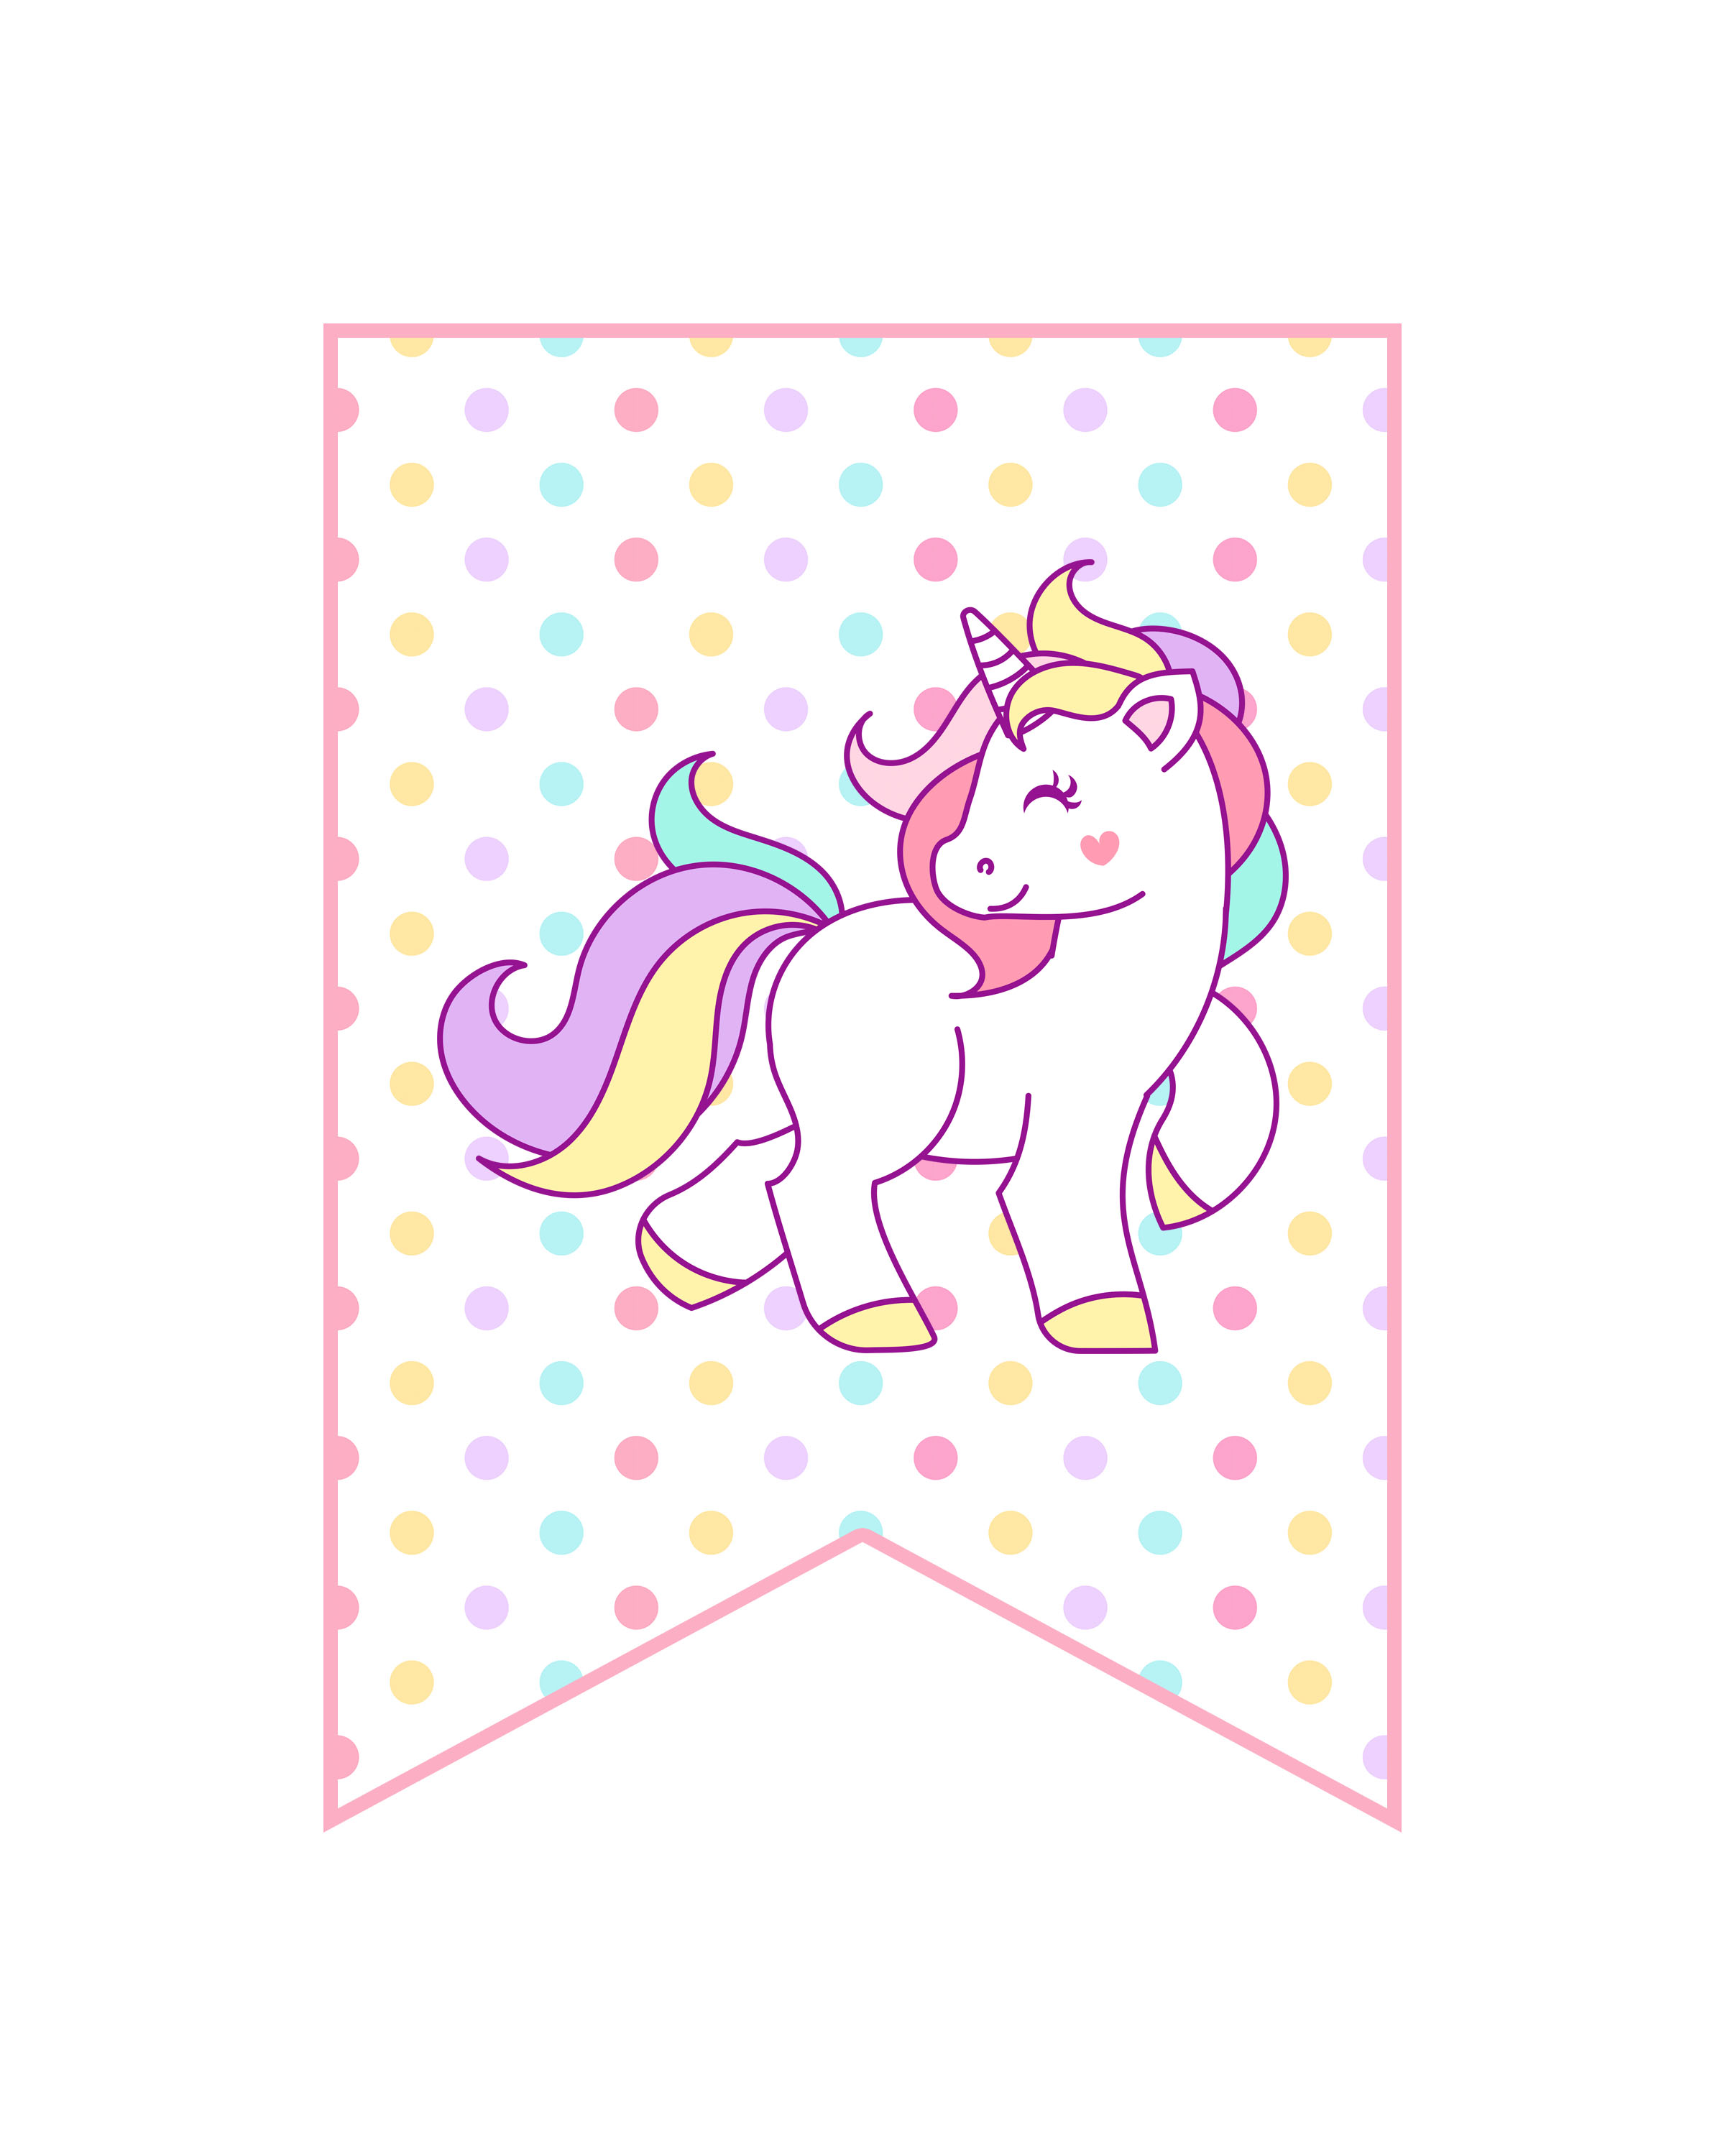 image regarding Free Printable Unicorn Pictures titled Absolutely free Printable Unicorn Celebration Decorations Pack - The Cottage